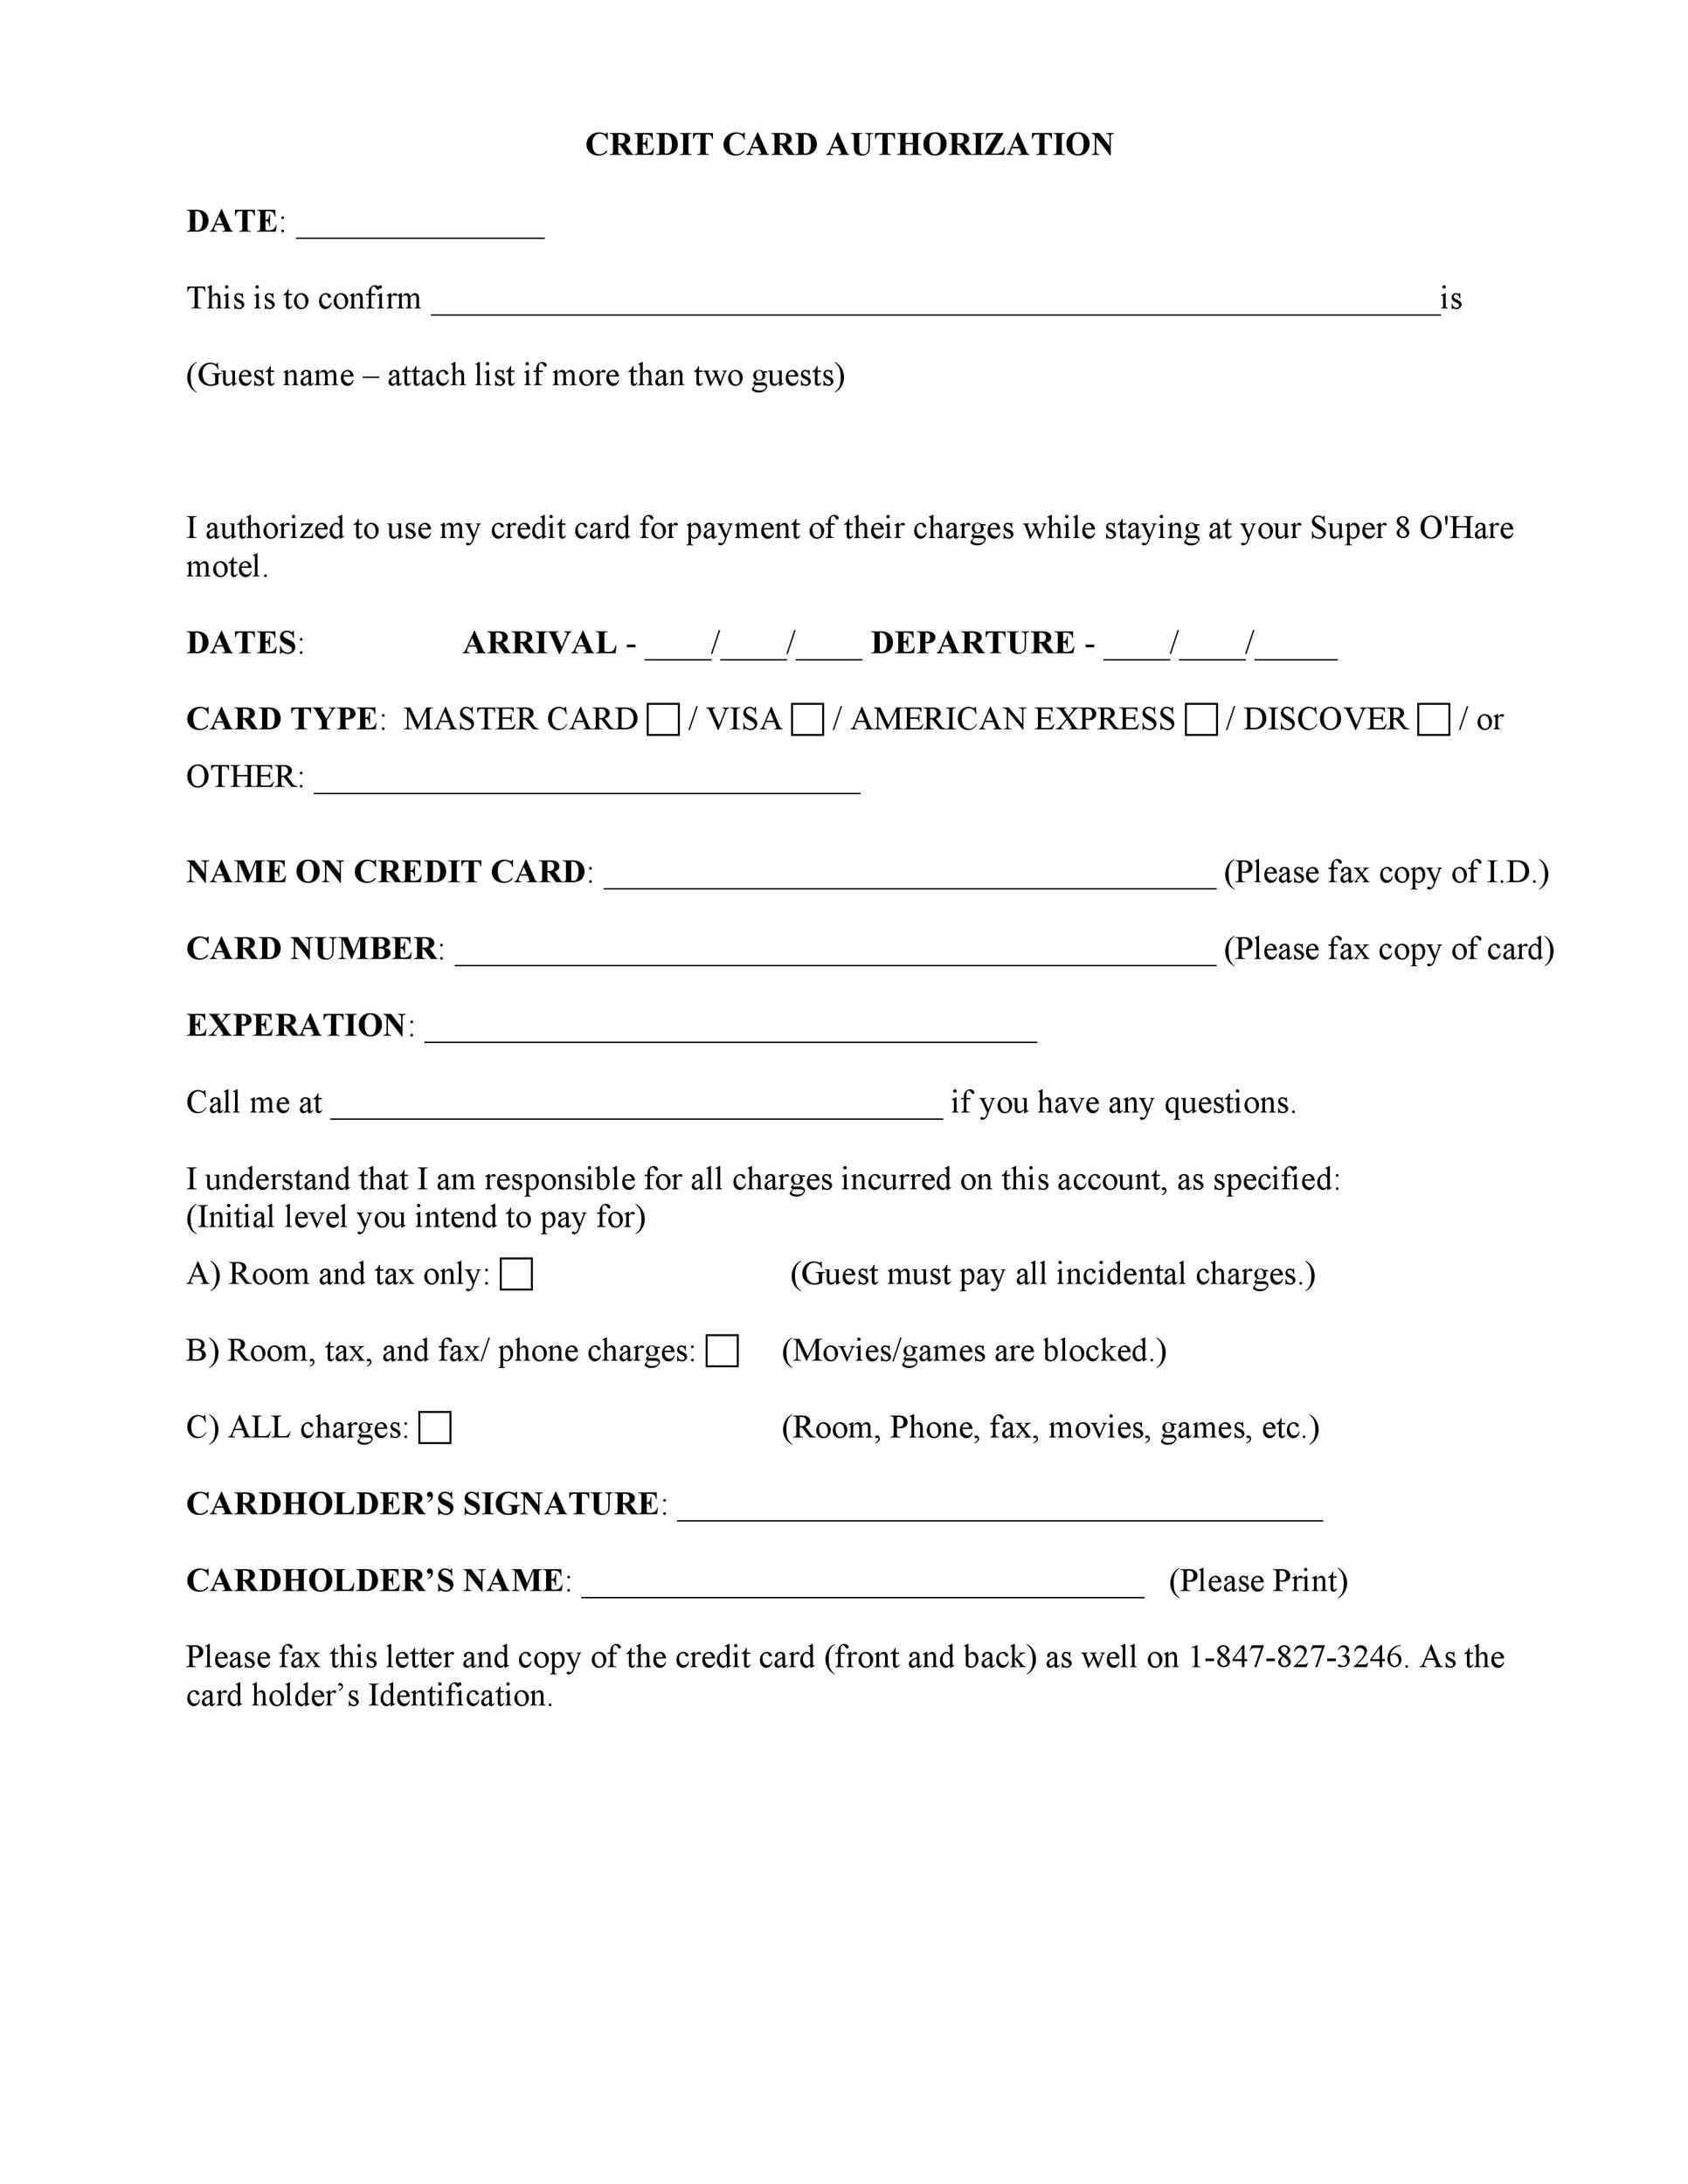 41 Credit Card Authorization Forms Templates {Ready-to-Use} - fax authorization form